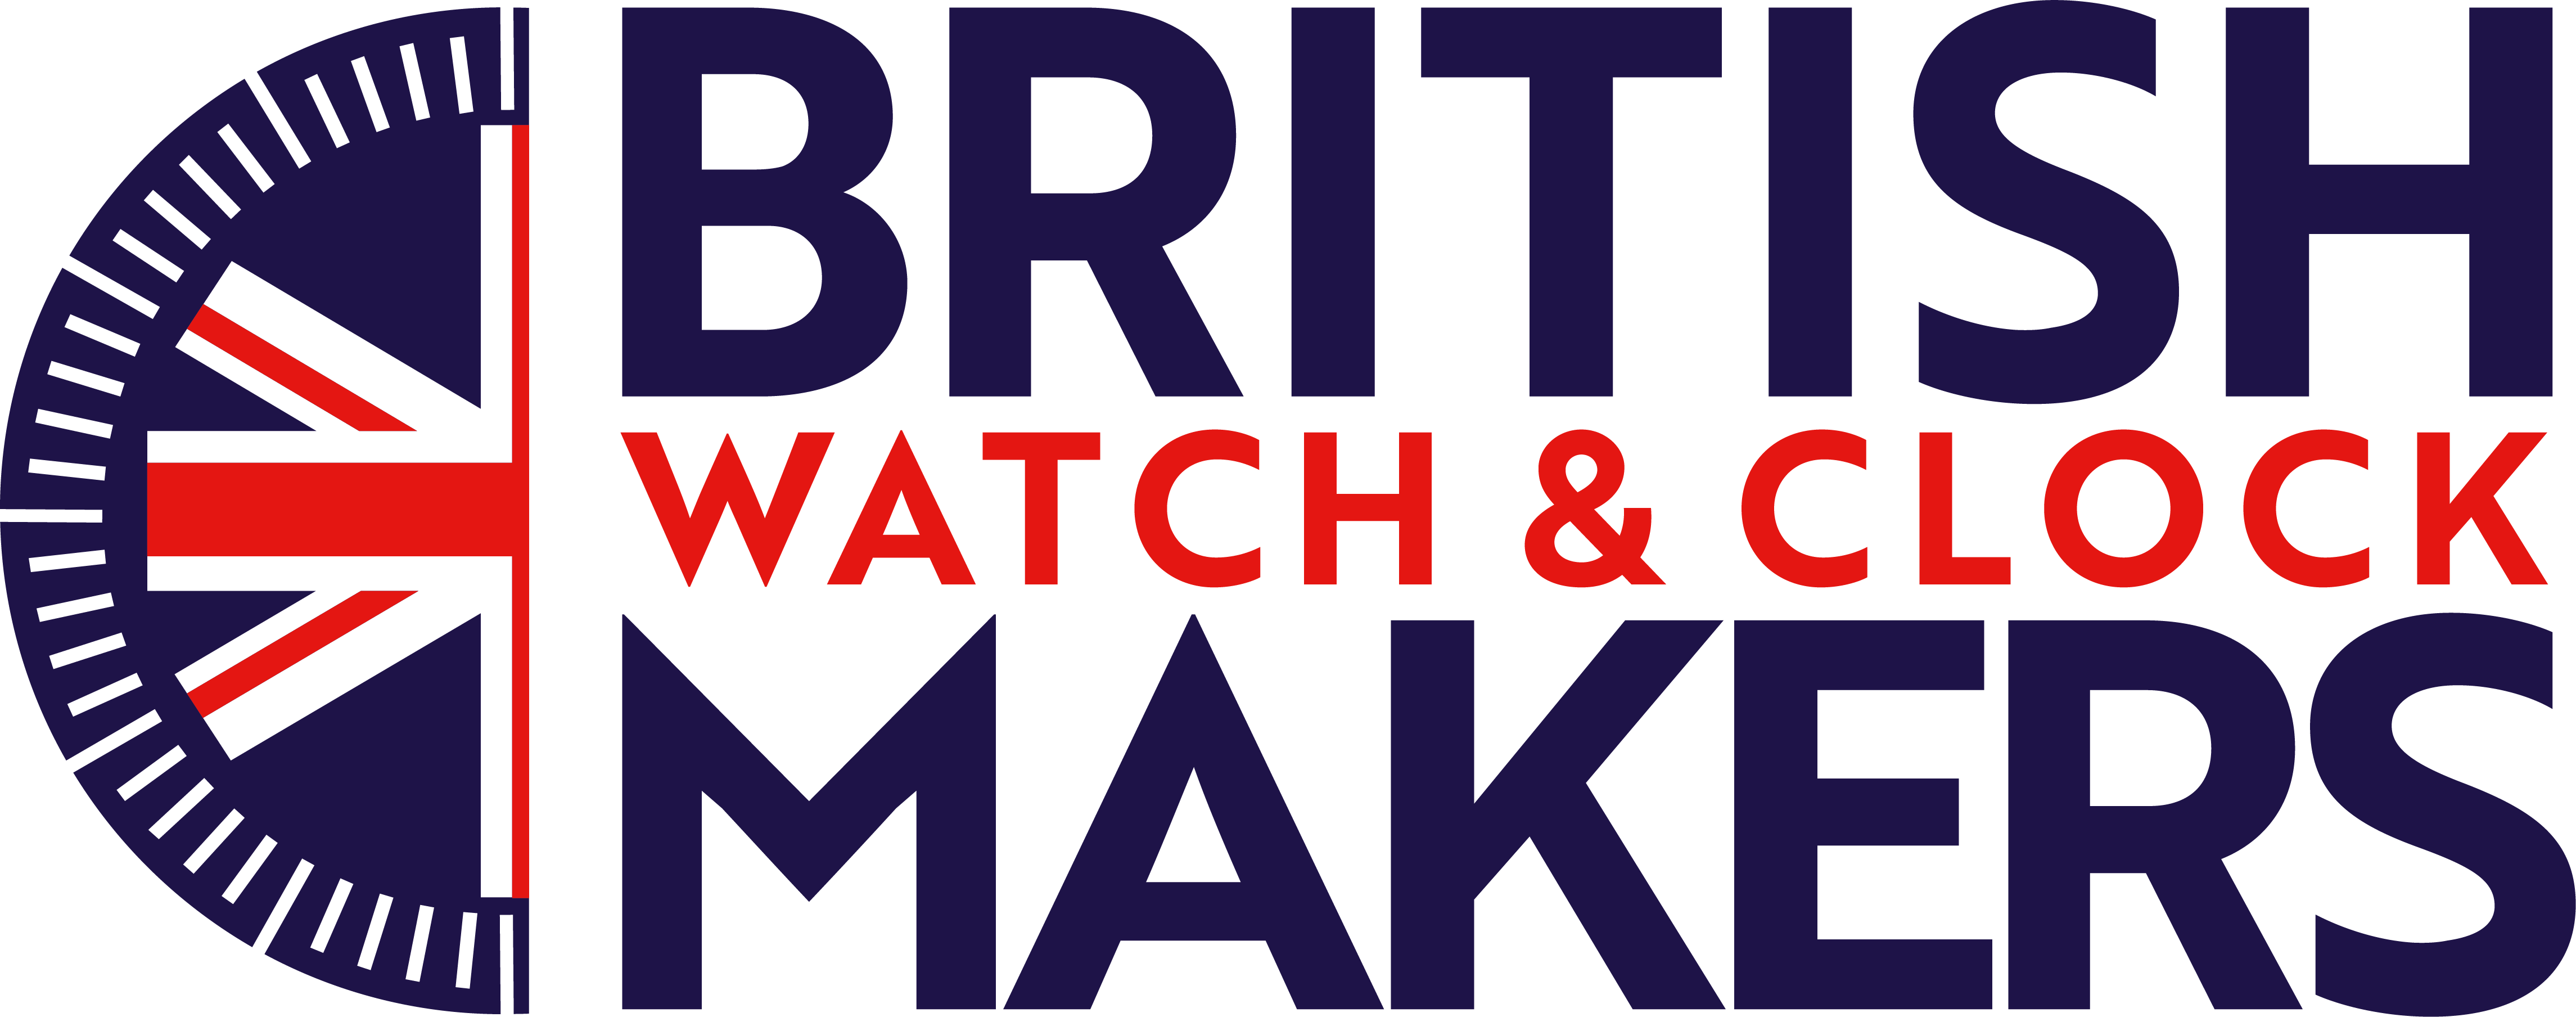 Alliance of British Watch and Clock Makers